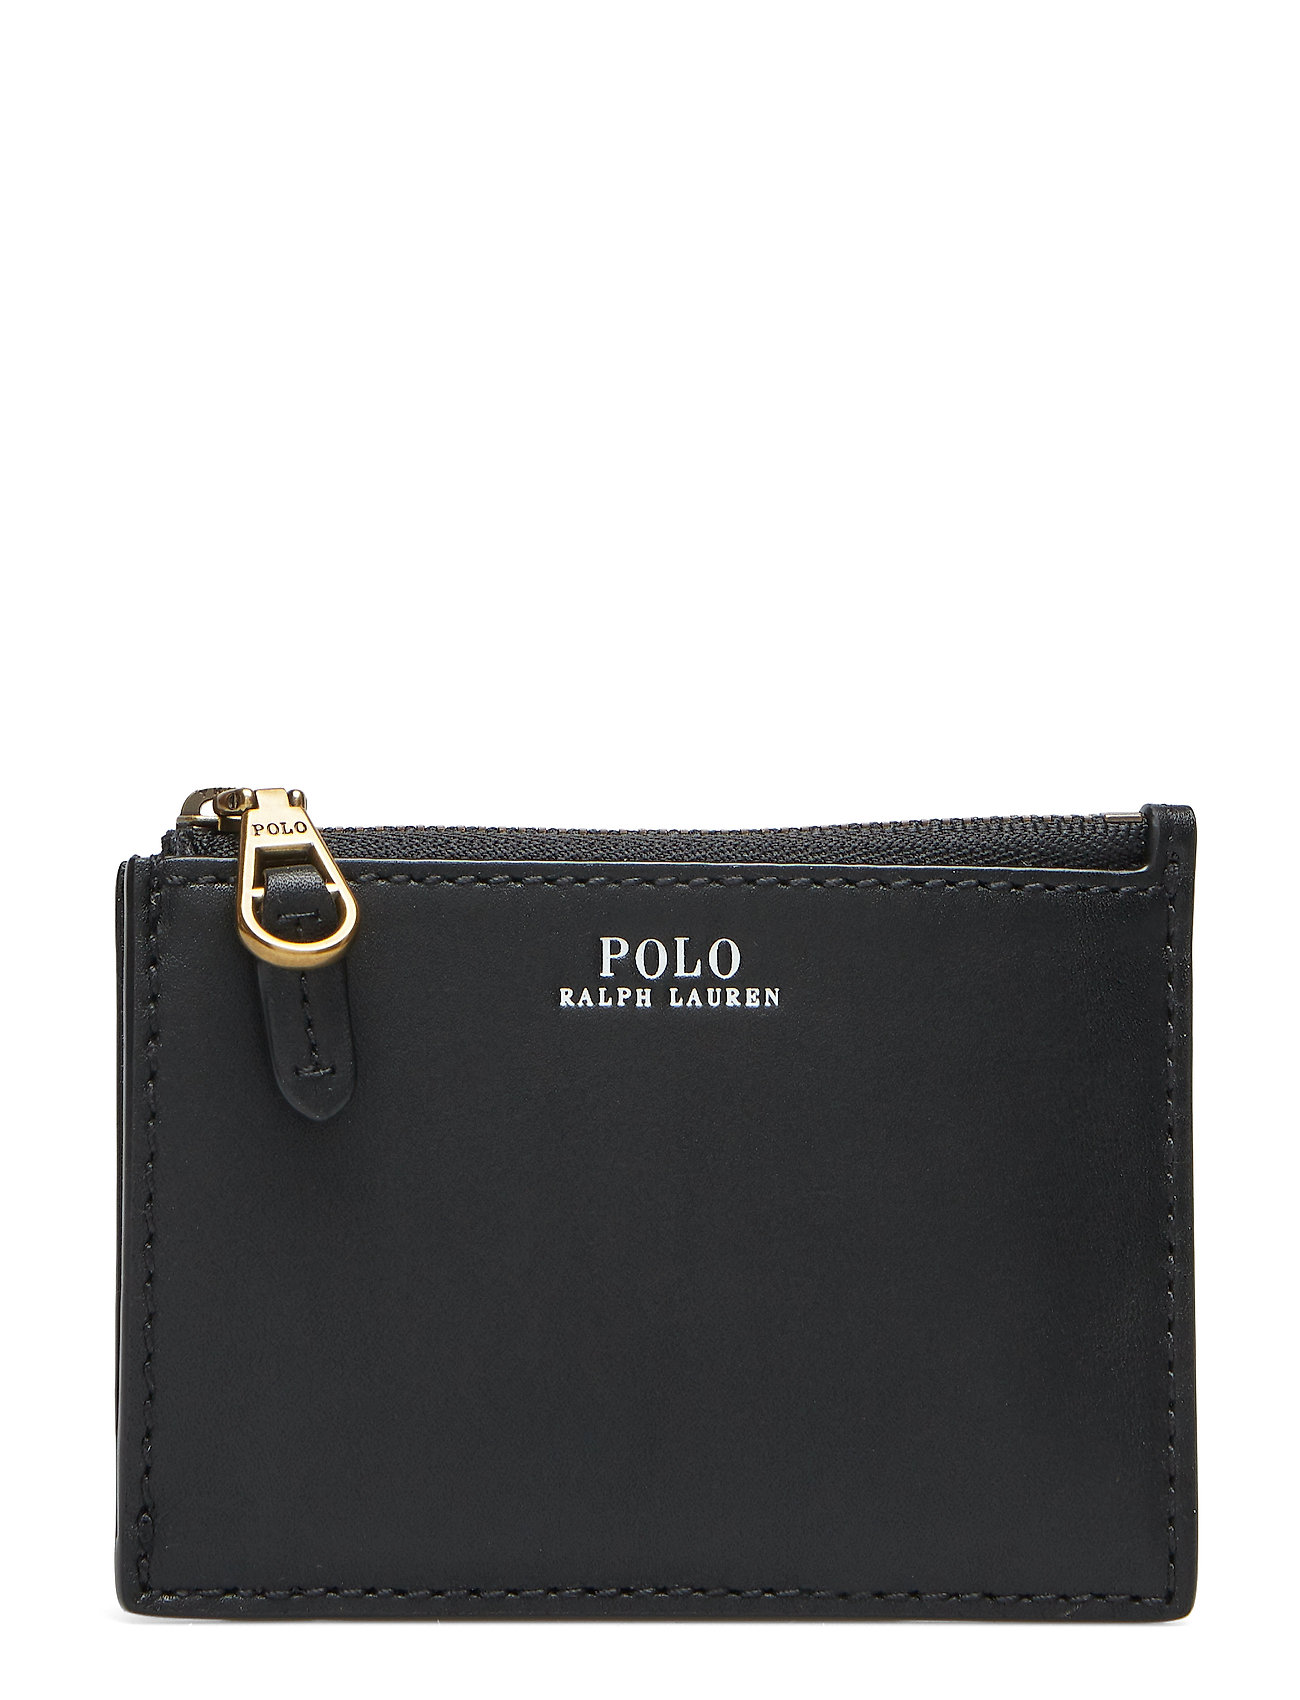 Nappa Zip Card Lauren Ralph Leather CaseblackPolo EH2WD9I